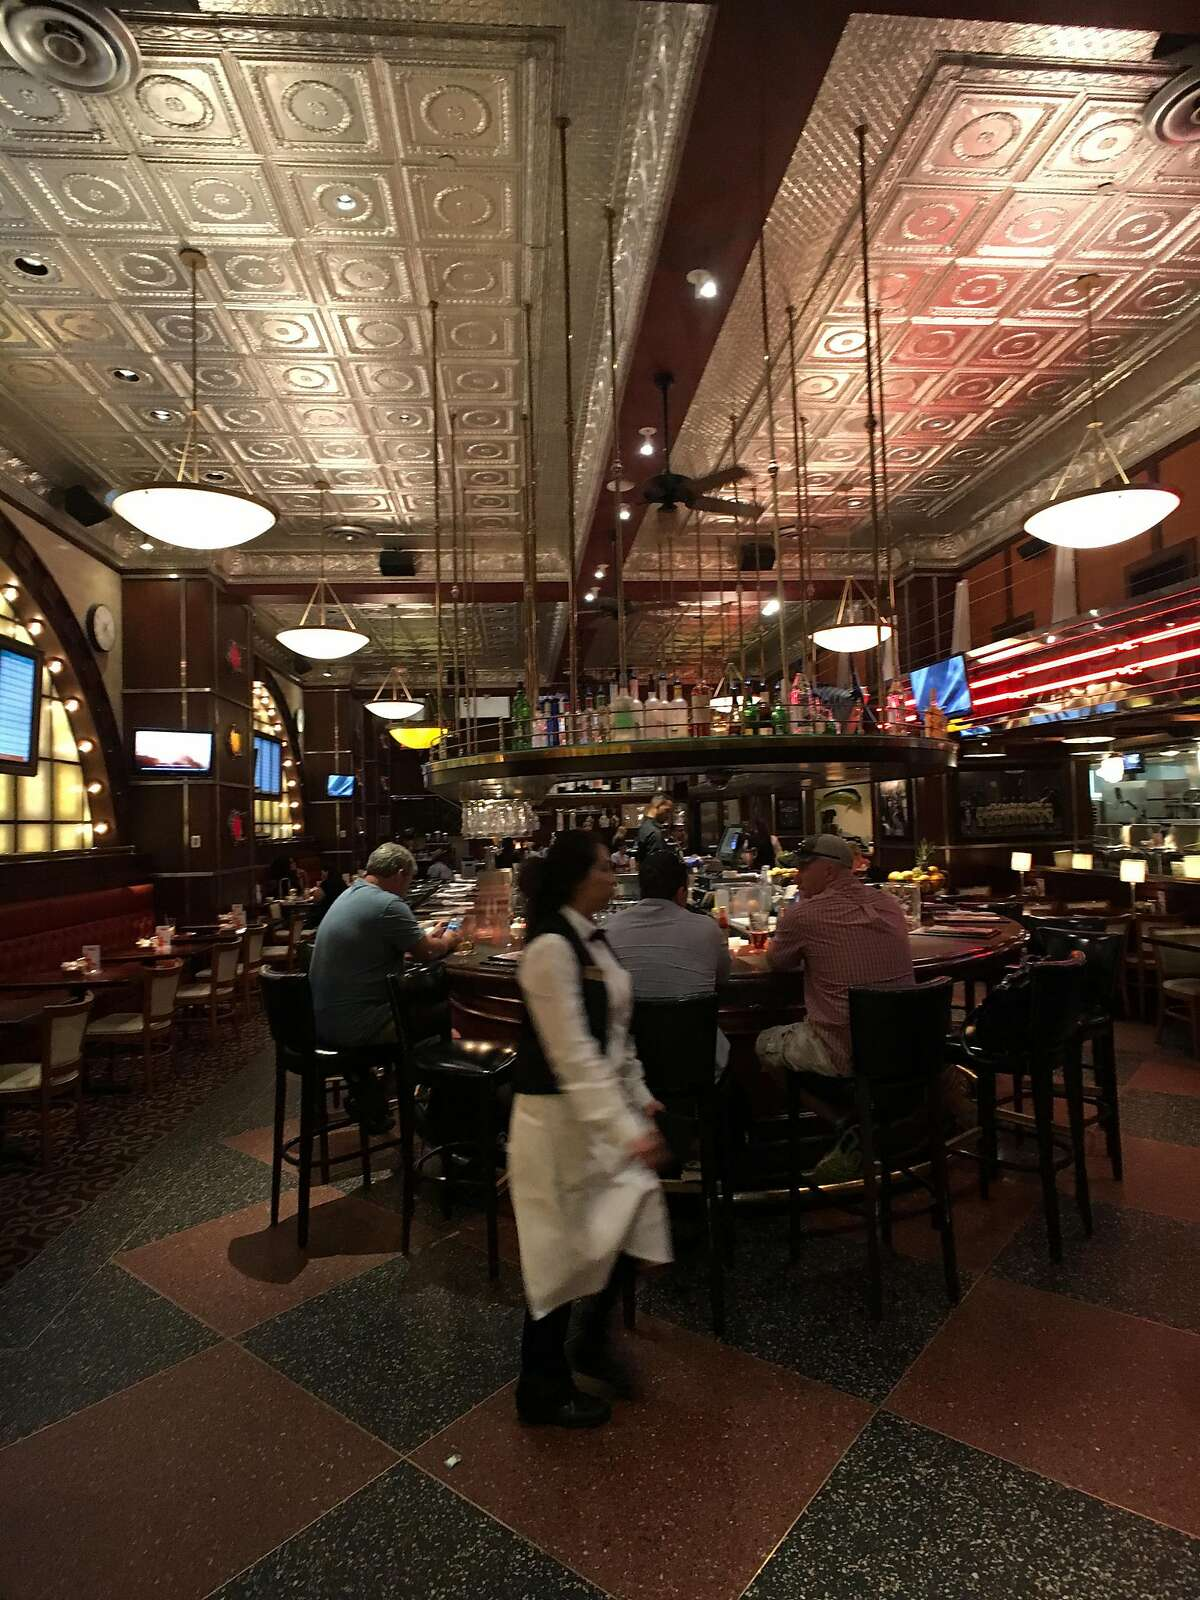 Customers dine at Pappadeaux Seafood Kitchen inside Dallas/Fort Worth International Airport.